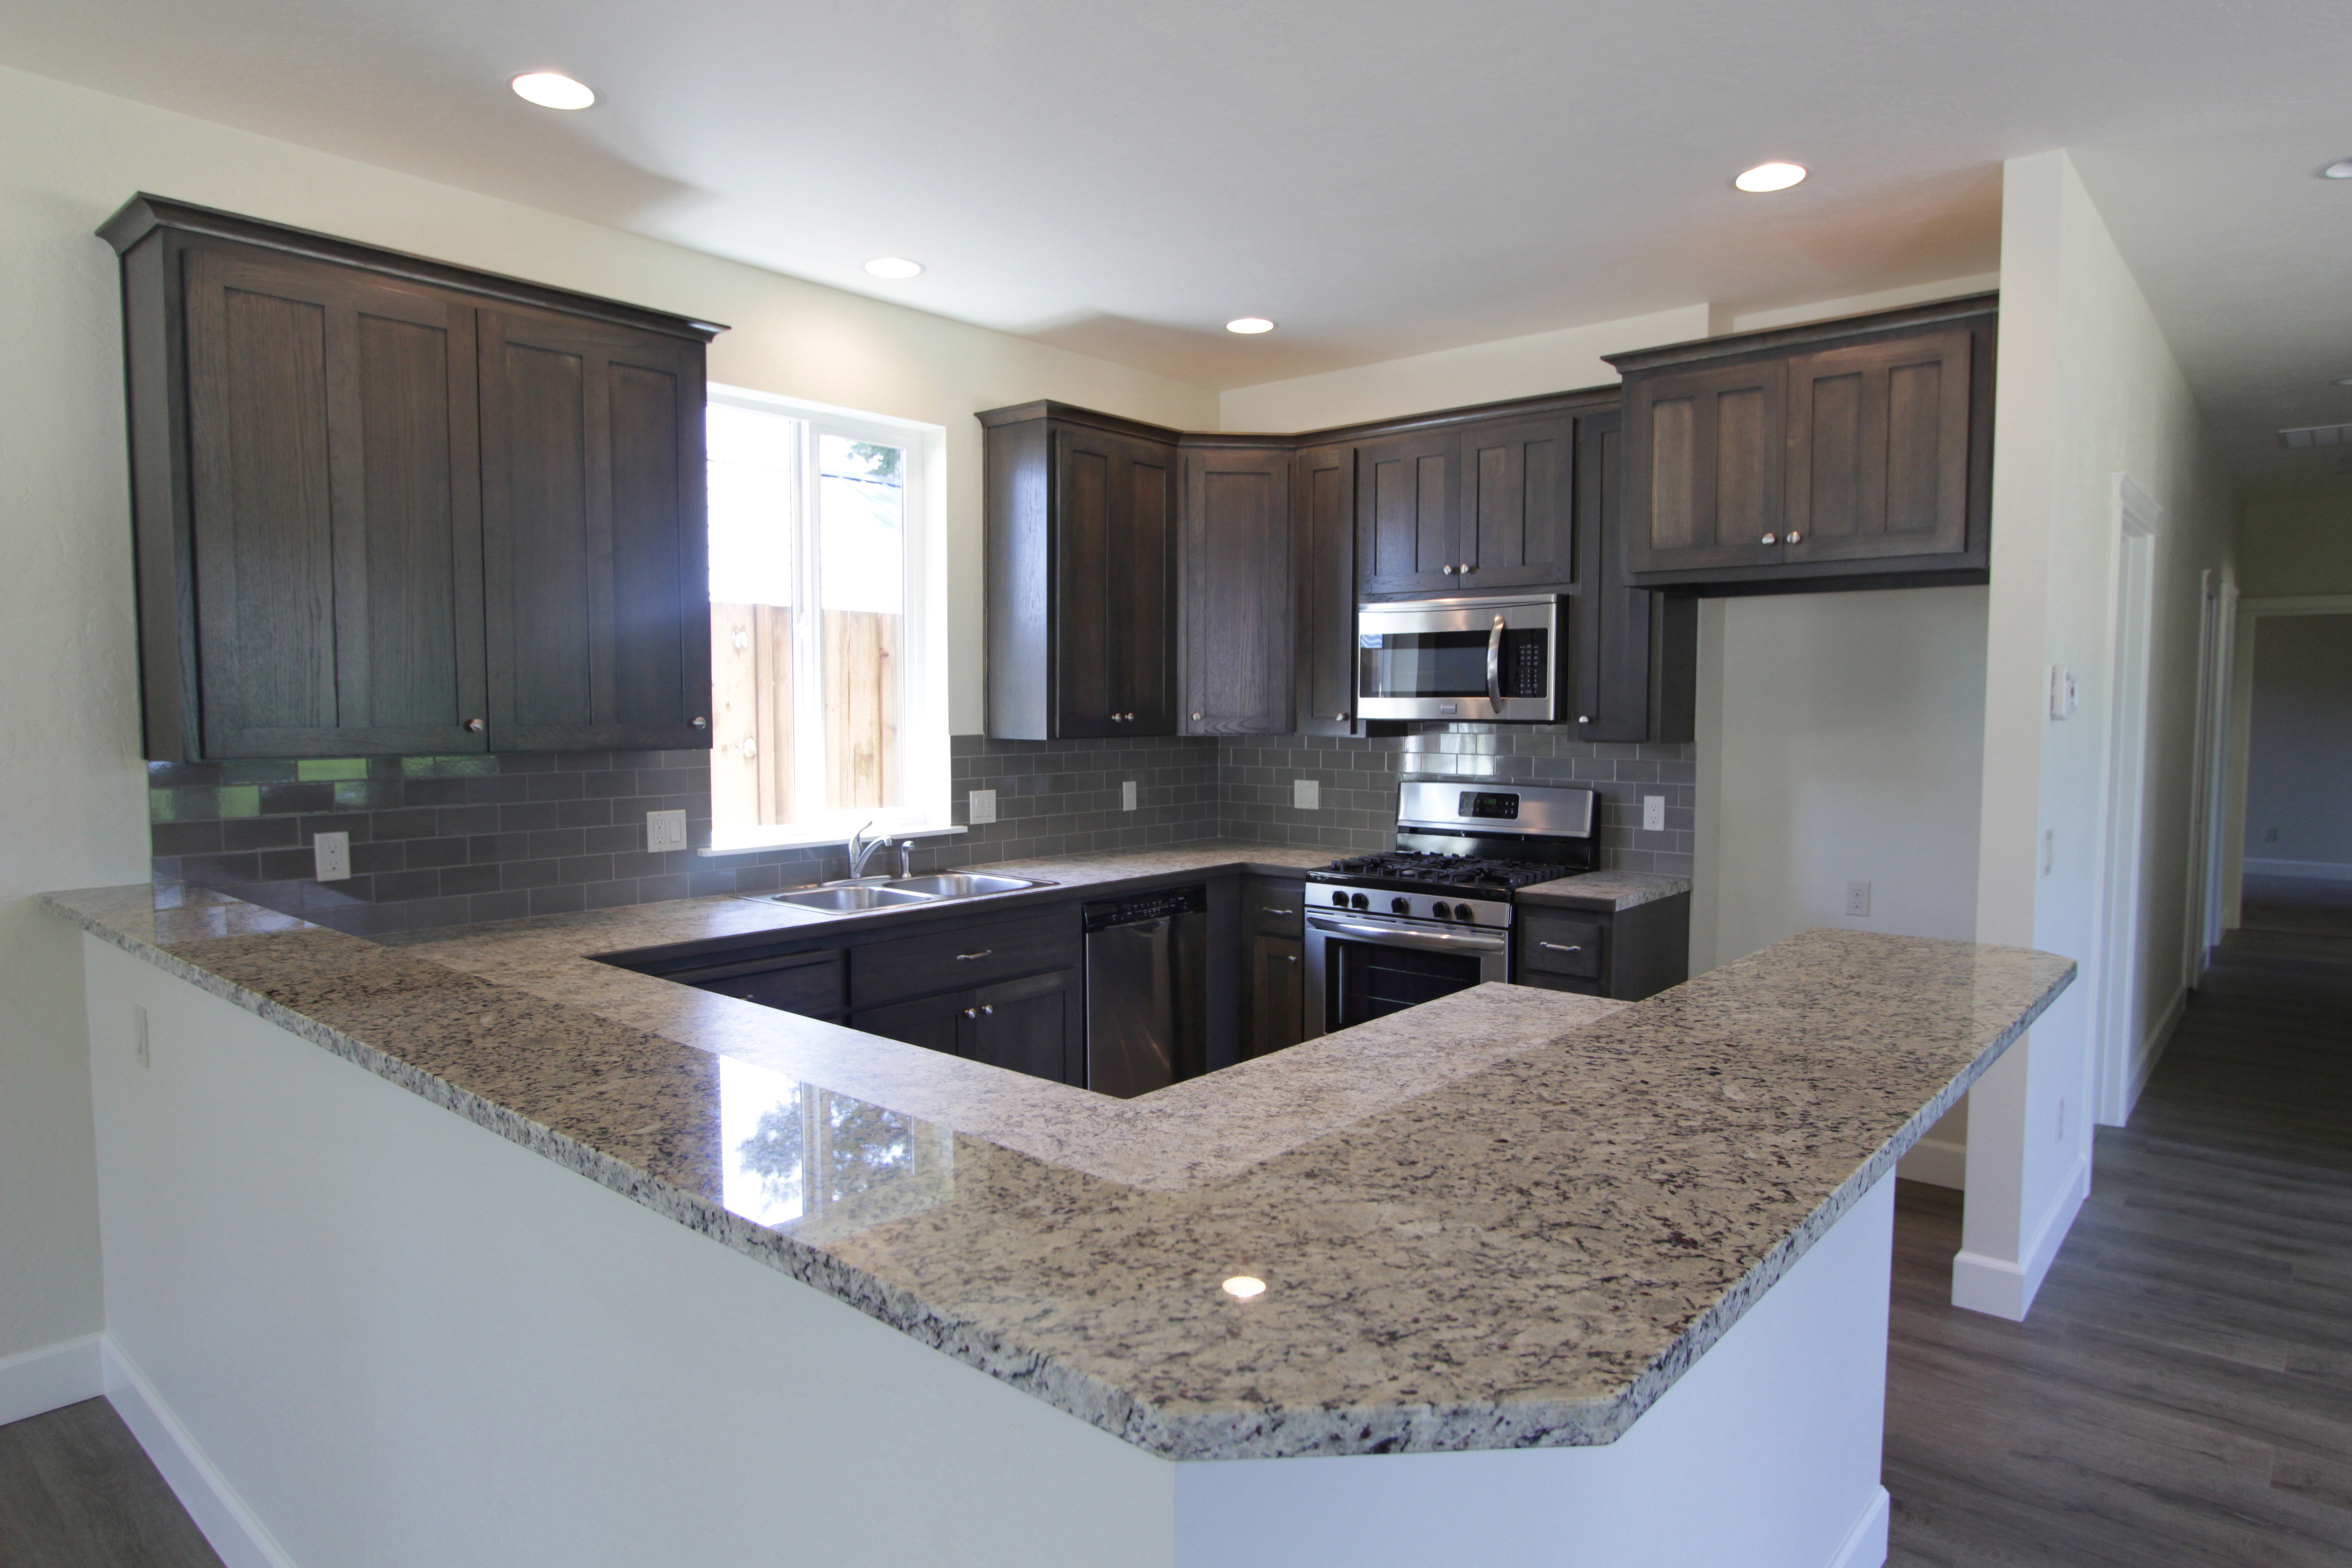 kitchen cabinets recessed doors http www newsonair org recessed http affordablecustomcabinets com cabinet doors arches page 4